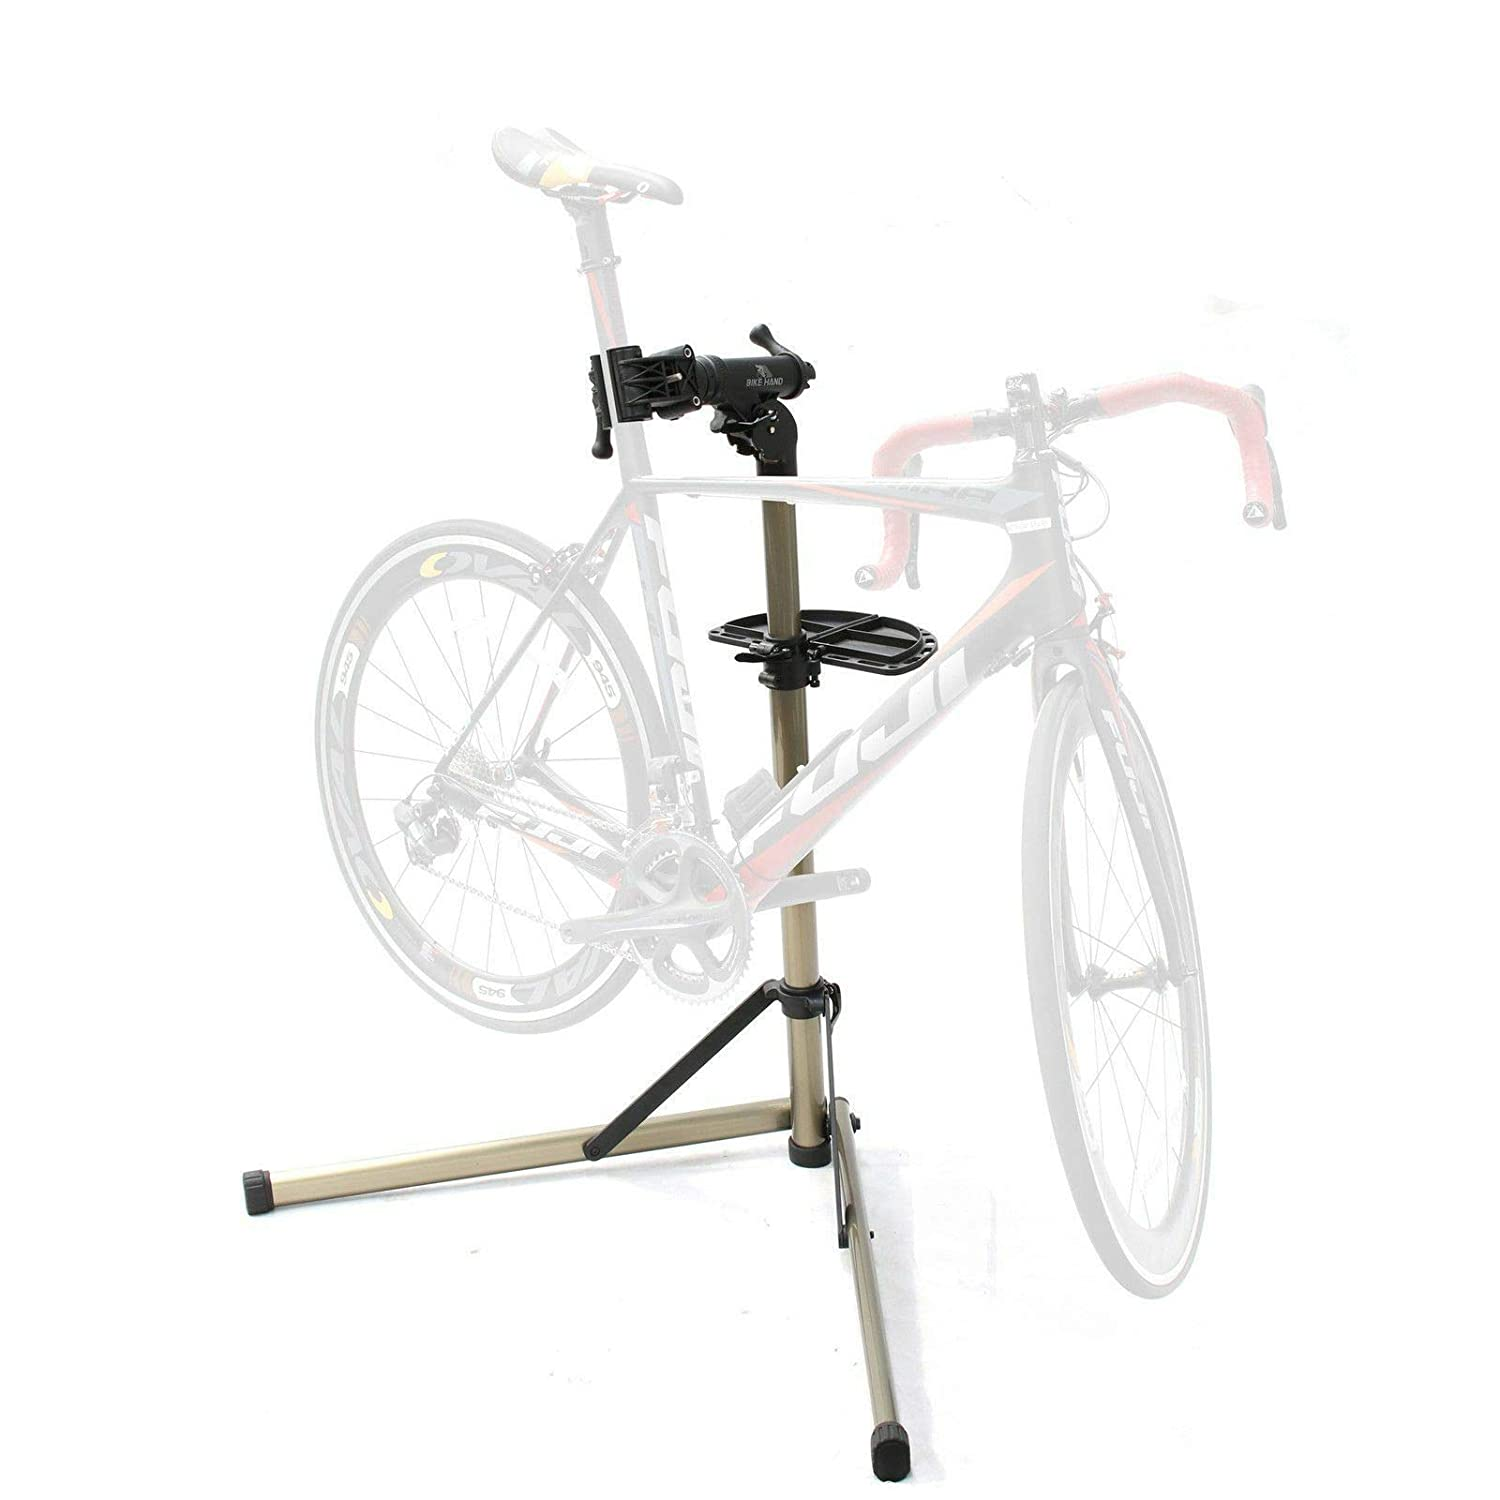 Bikehand Bike Repair Stand – Home Portable Bicycle Mechanics Workstand – for Mountain Bikes and Road Bikes Maintenance